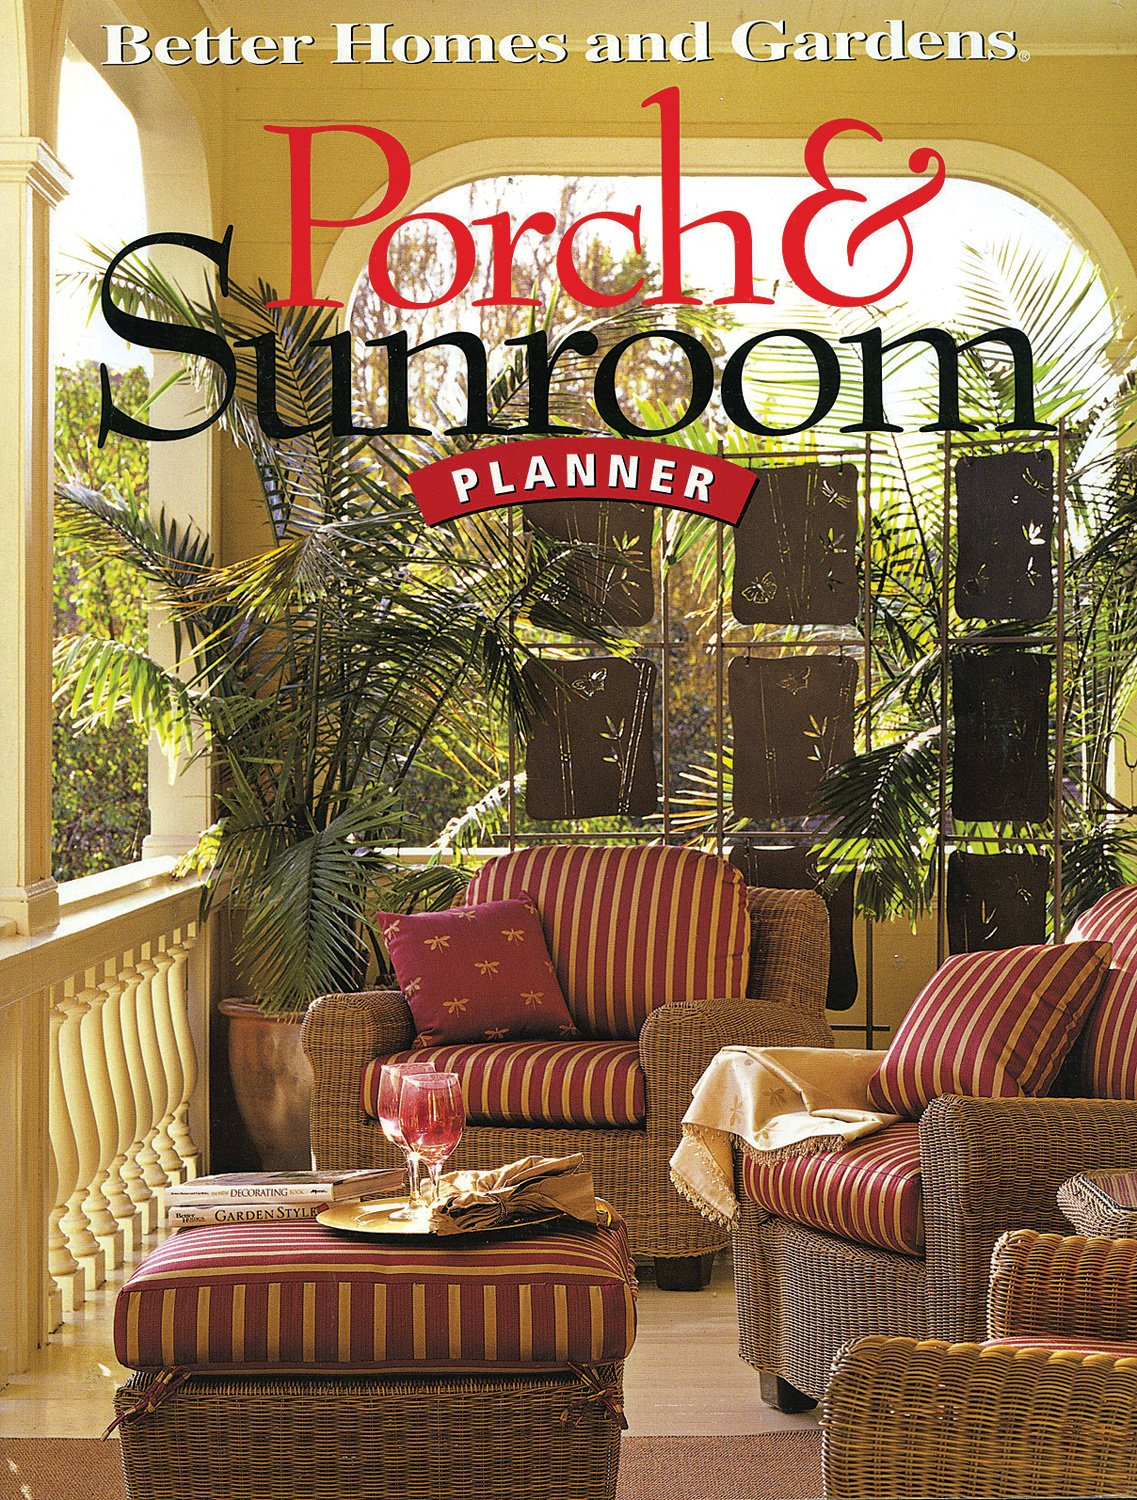 Porch Sunroom Planner Better Homes And Gardens Home Better Homes And Gardens 9780696222184 Amazon Com Books